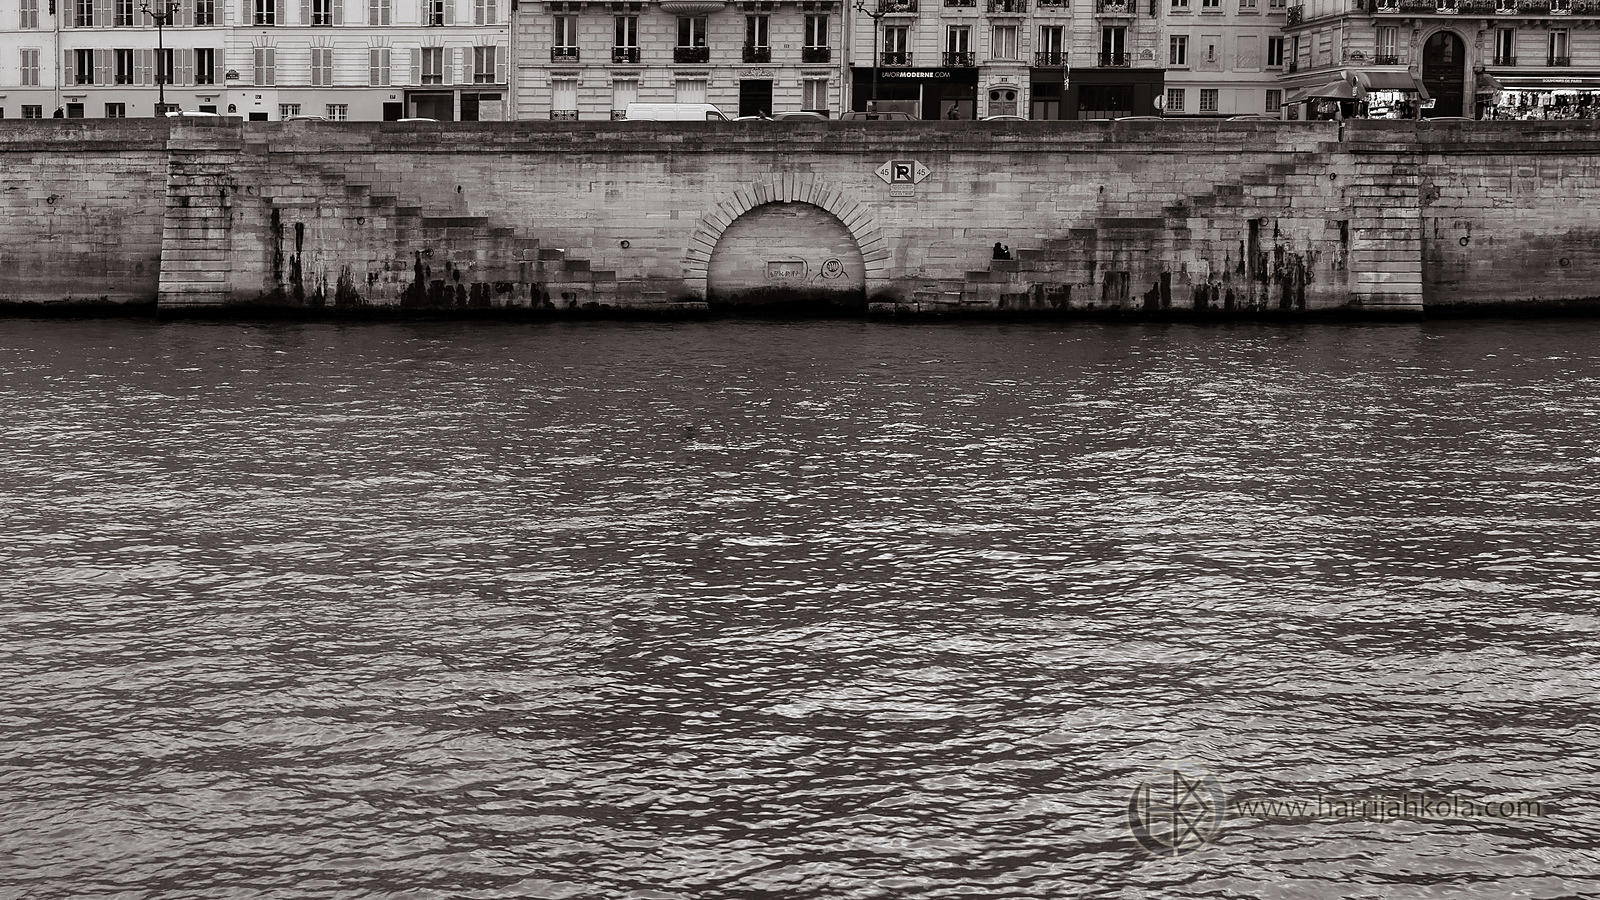 France - Paris (Seine - Arch)